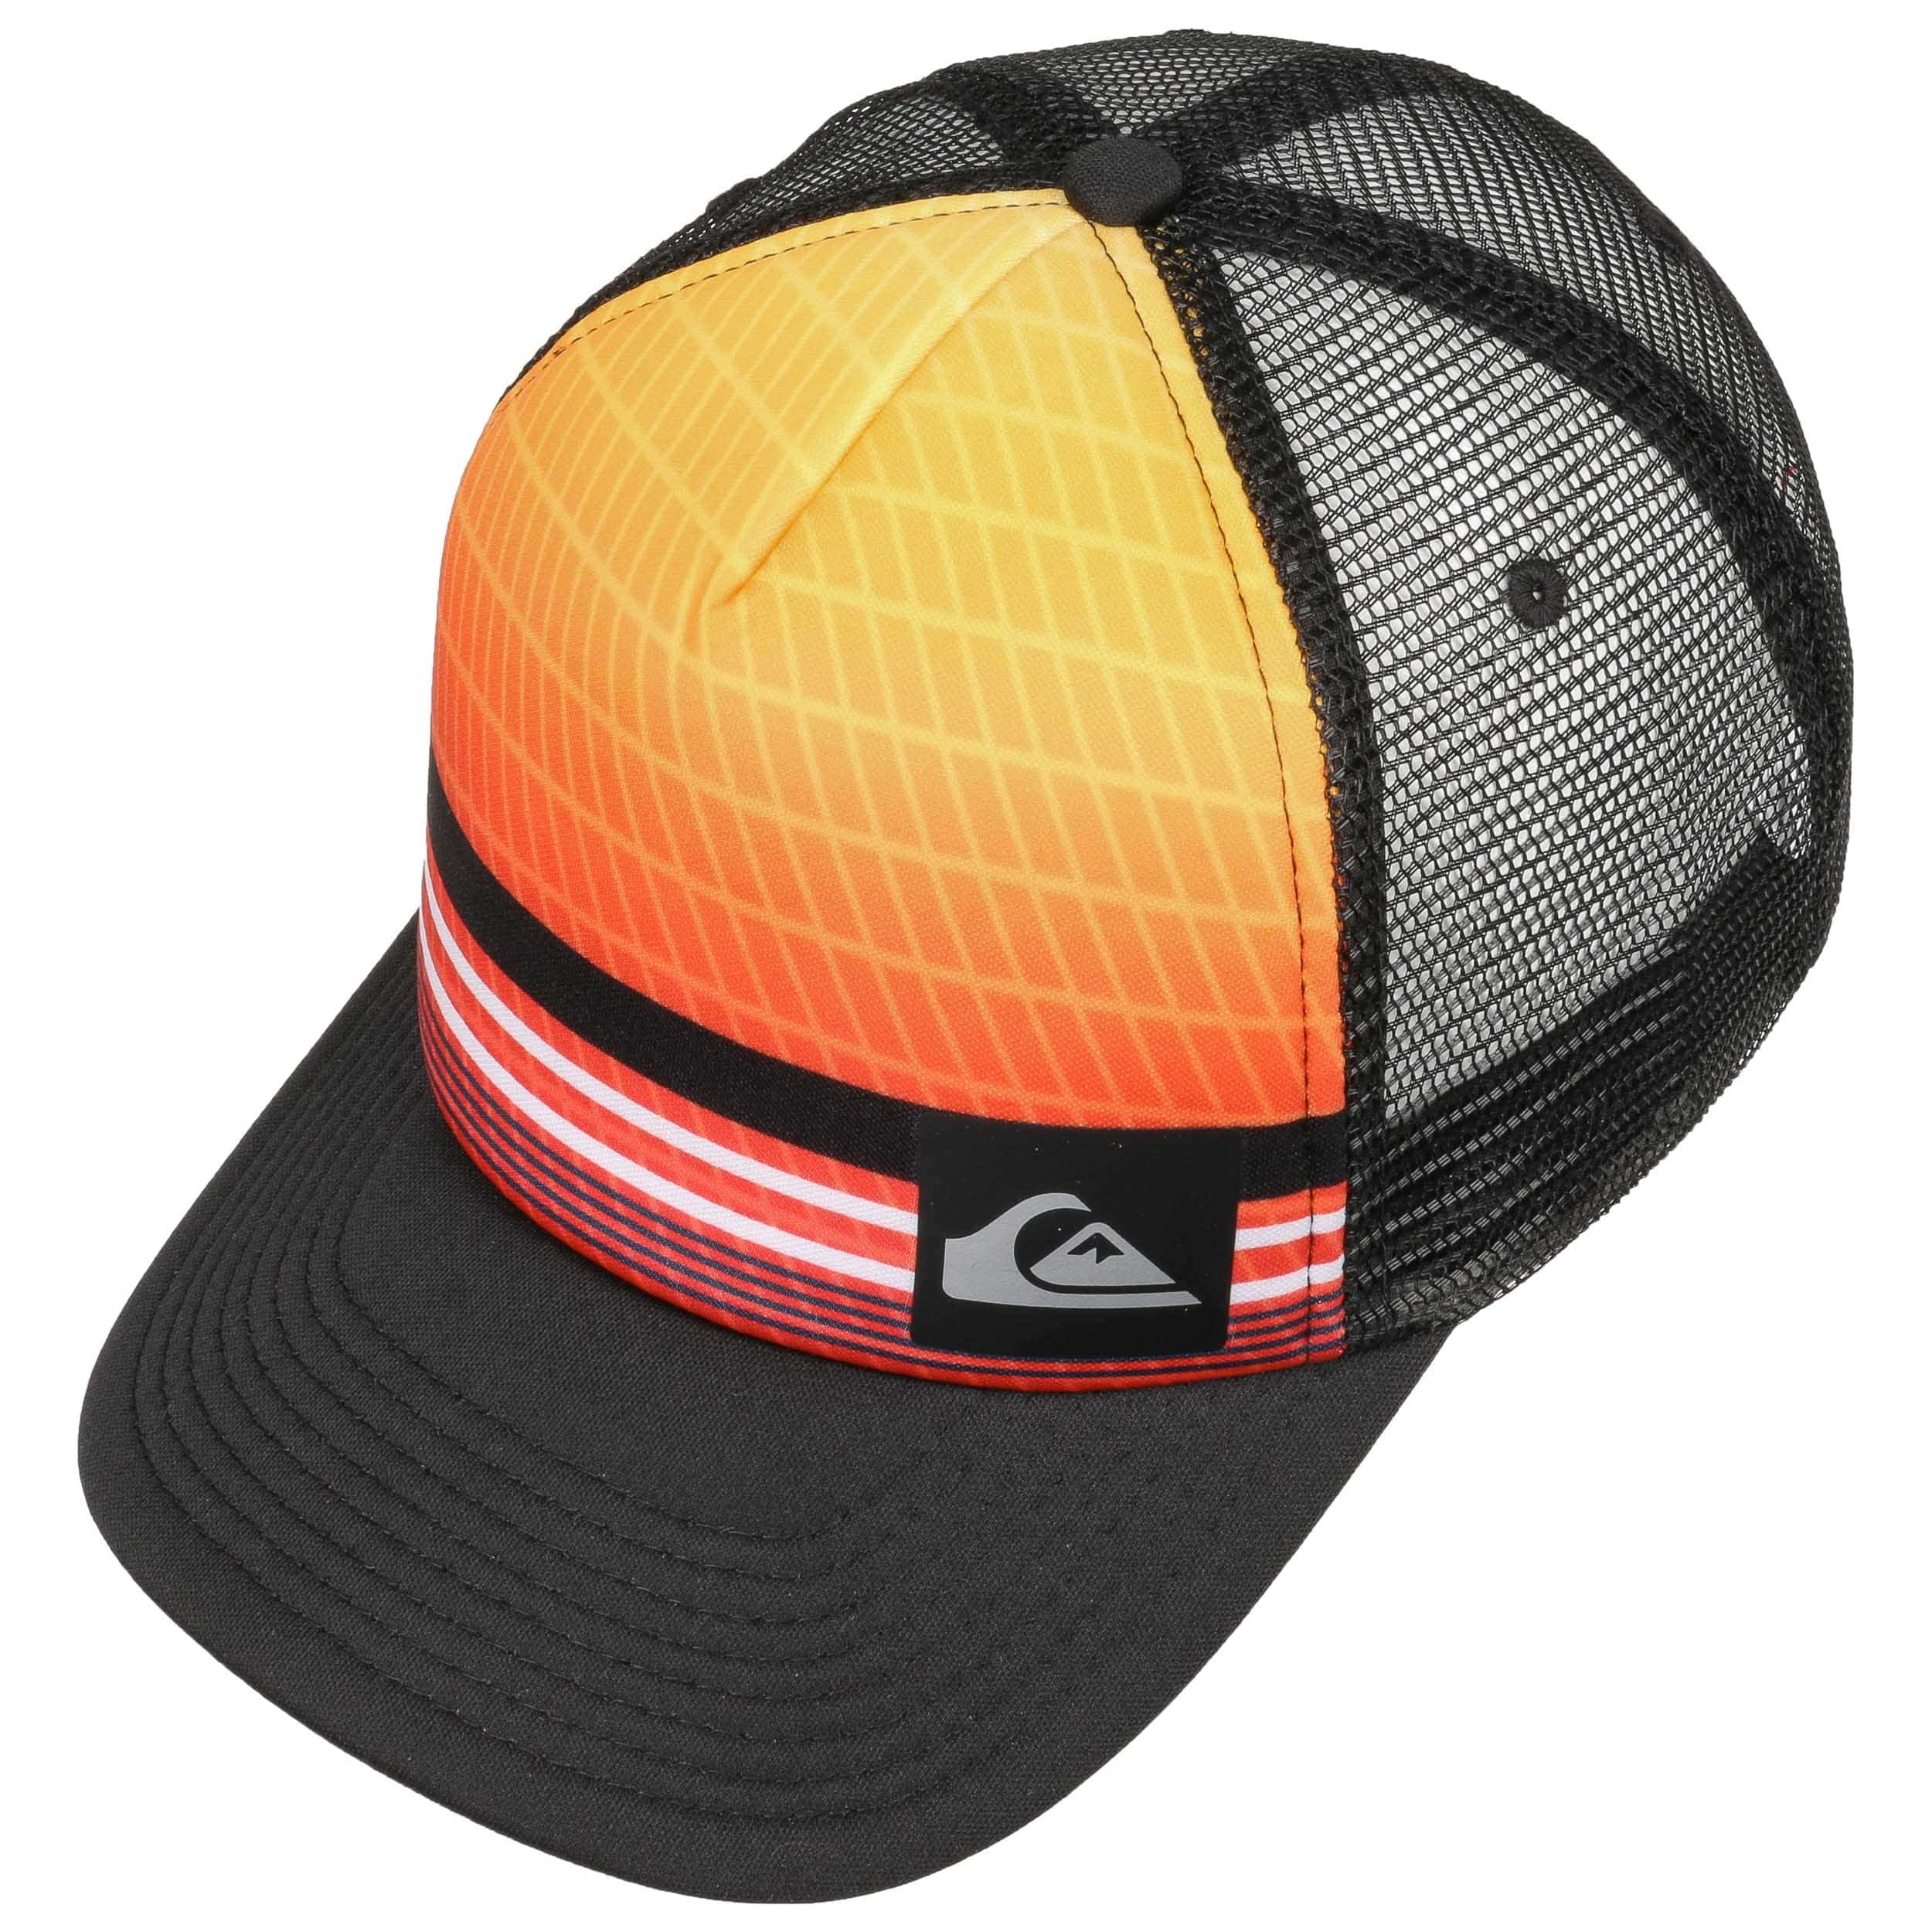 ... Foamnation Youth Trucker Cap by Quiksilver - orange 1 ... 579d614f00a